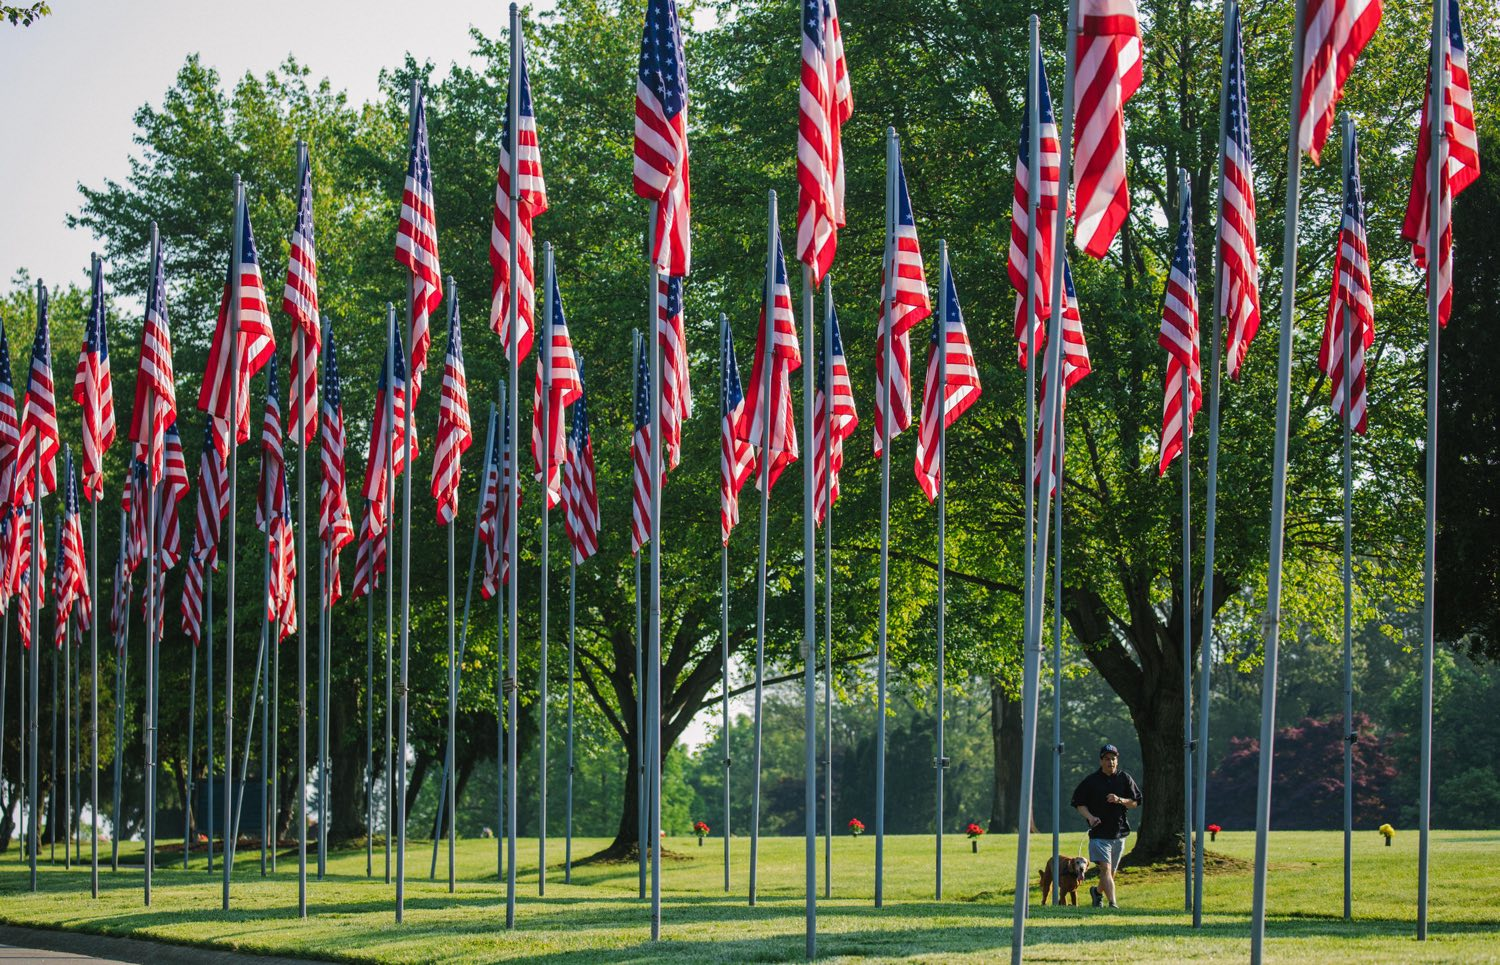 A man takes a morning run with his dog past the Avenue of 444 Flags at Hillcrest Memorial Park cemetery on Thursday, May 24, 2018, in Hermitage. The flags were raised during the Iran hostage crisis and mark the 444 days of captivity. (Andrew Rush/Post-Gazette)